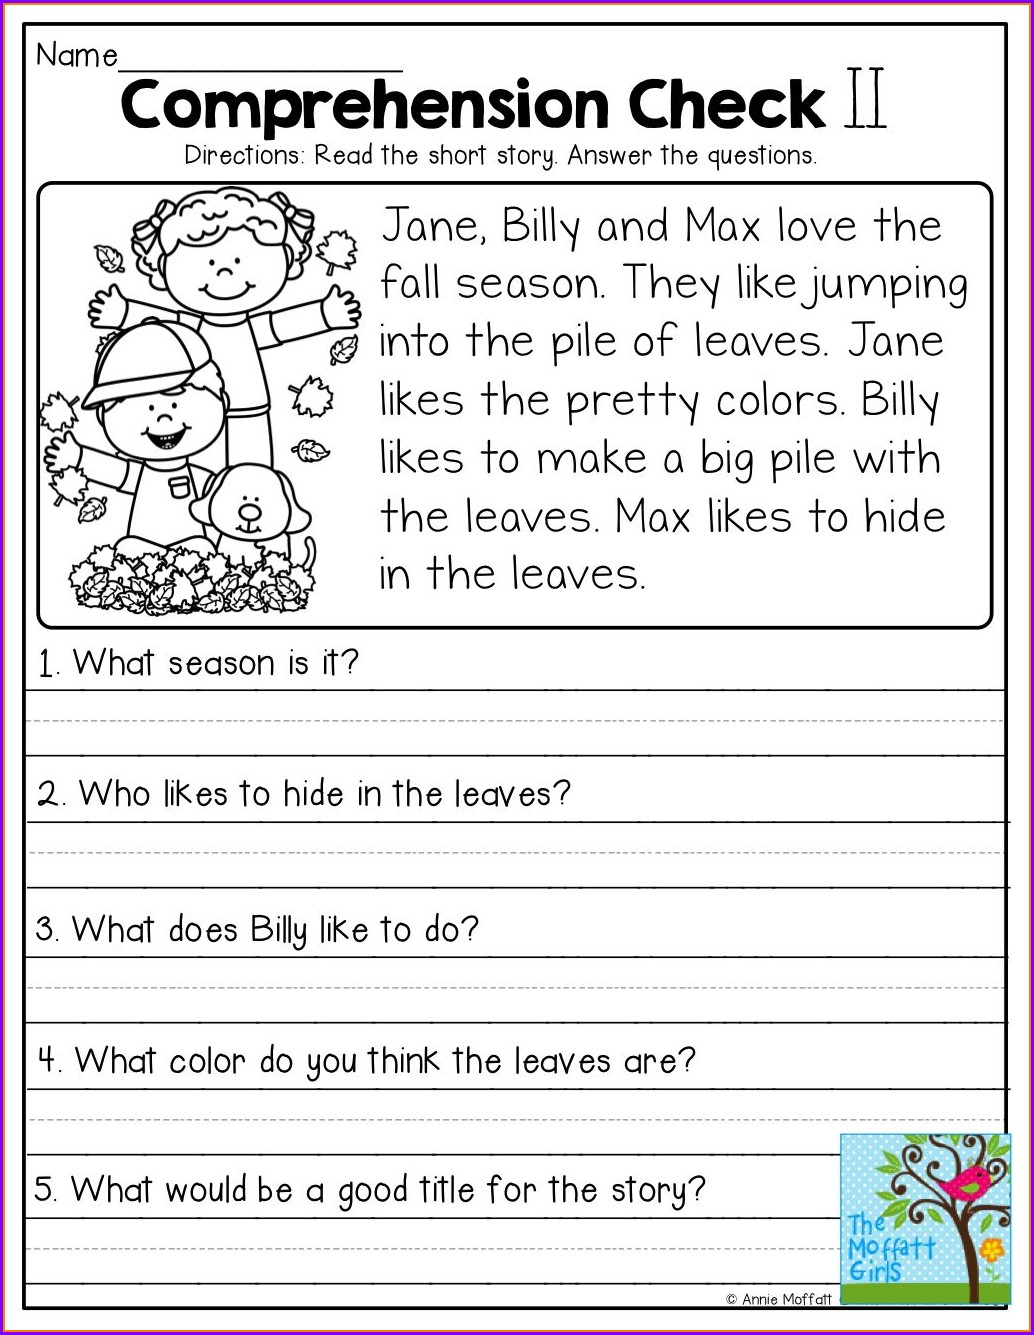 Printable 3rd Grade Reading Comprehension Worksheets Multiple Choice